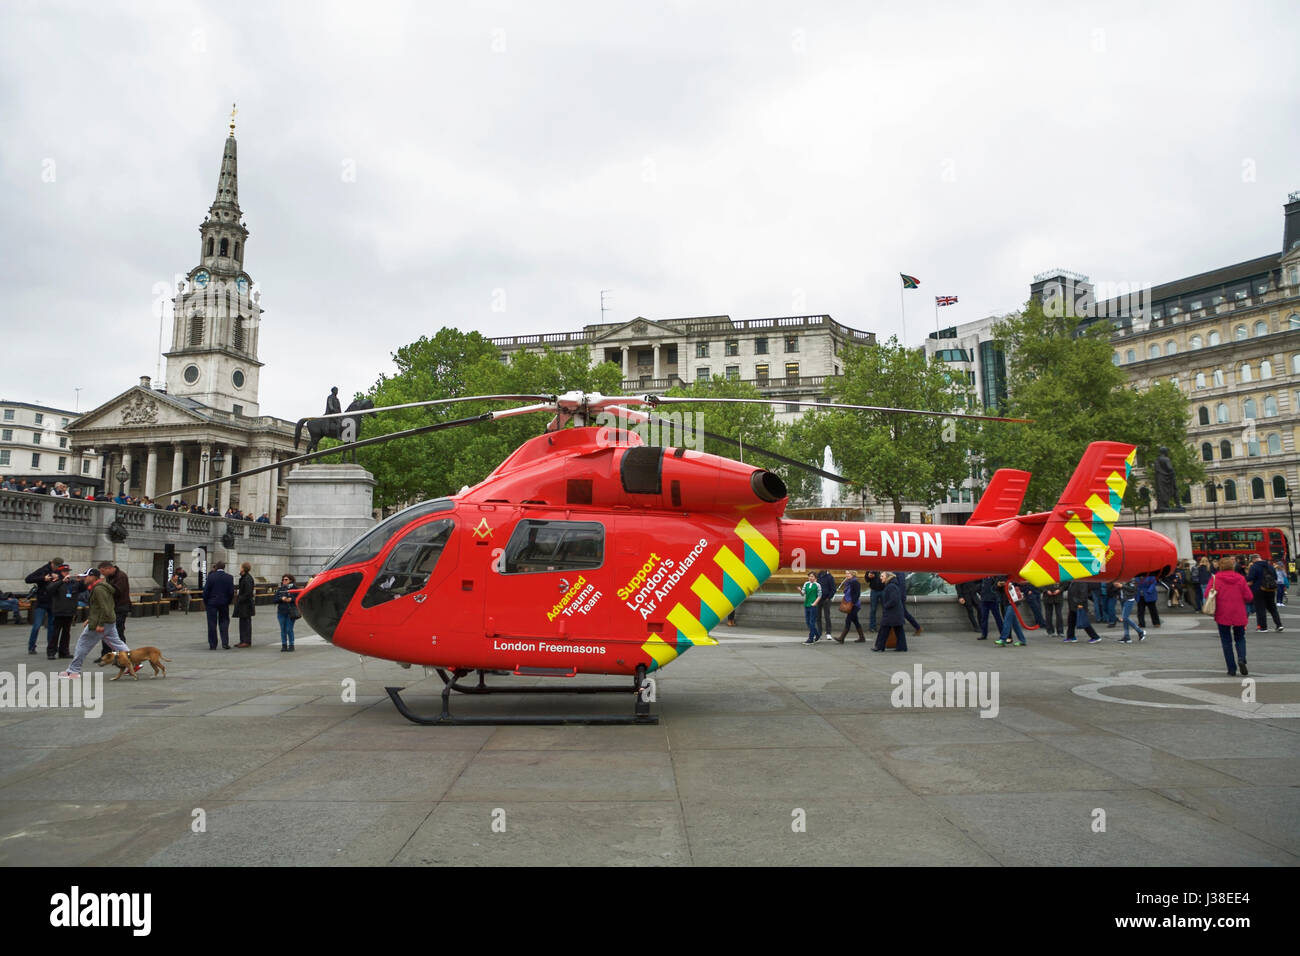 London Air Ambulance helicopter in Trafalgar Square. Advanced trauma team Air ambulance helicopter. Air ambulance - Stock Image